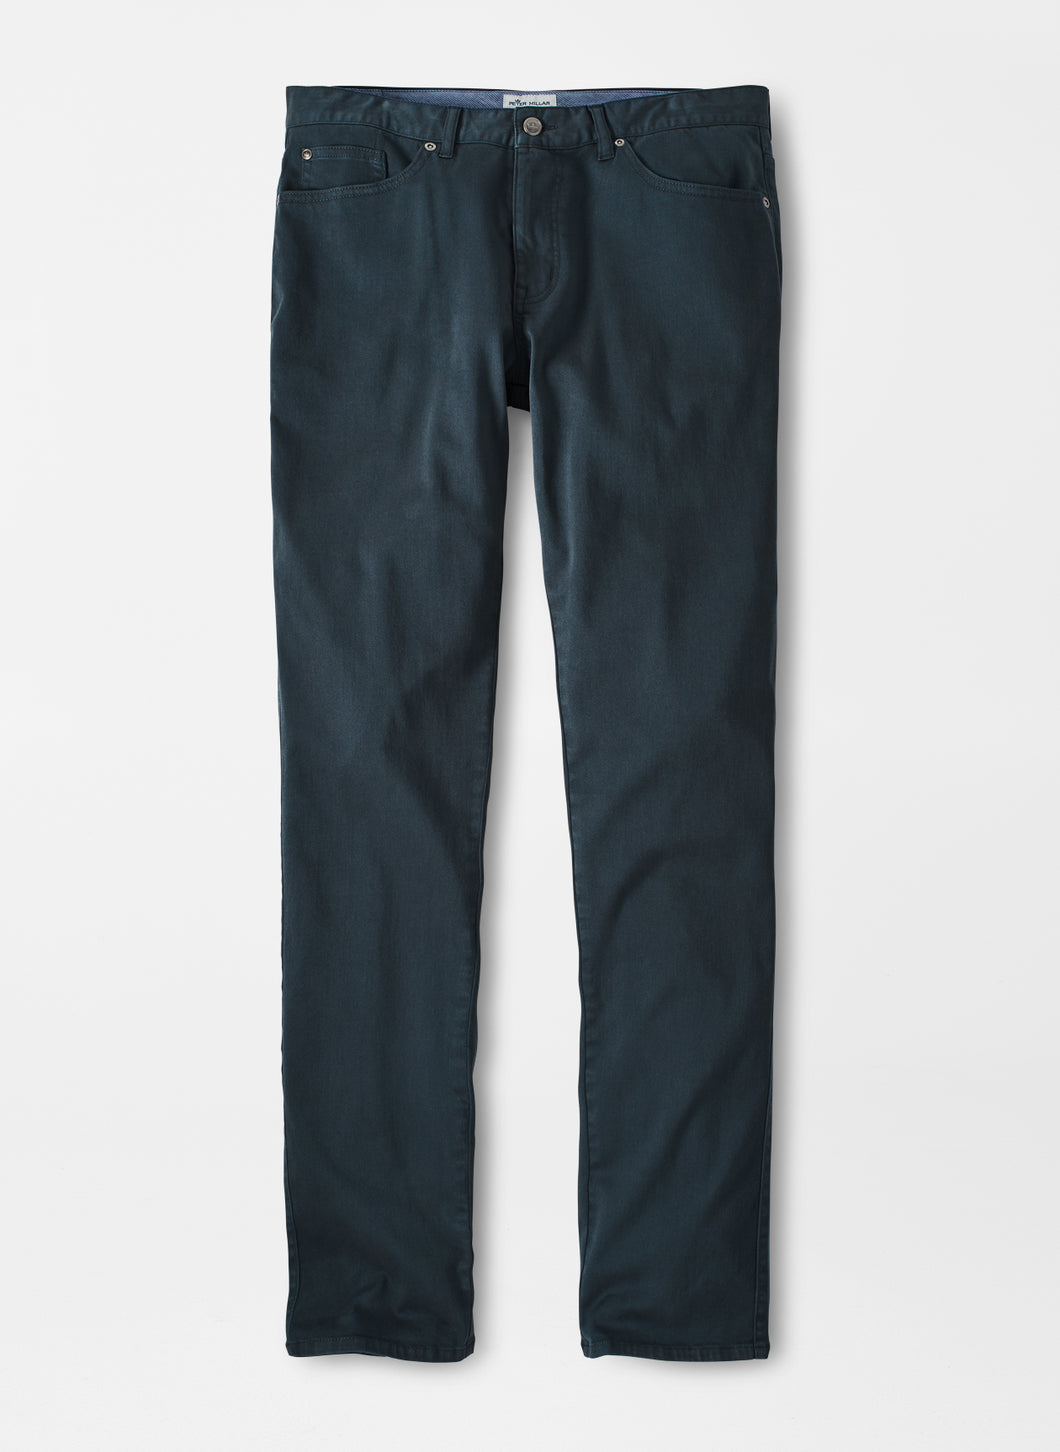 Peter Millar Ultimate Sateen Five-Pocket Pant in Charcoal